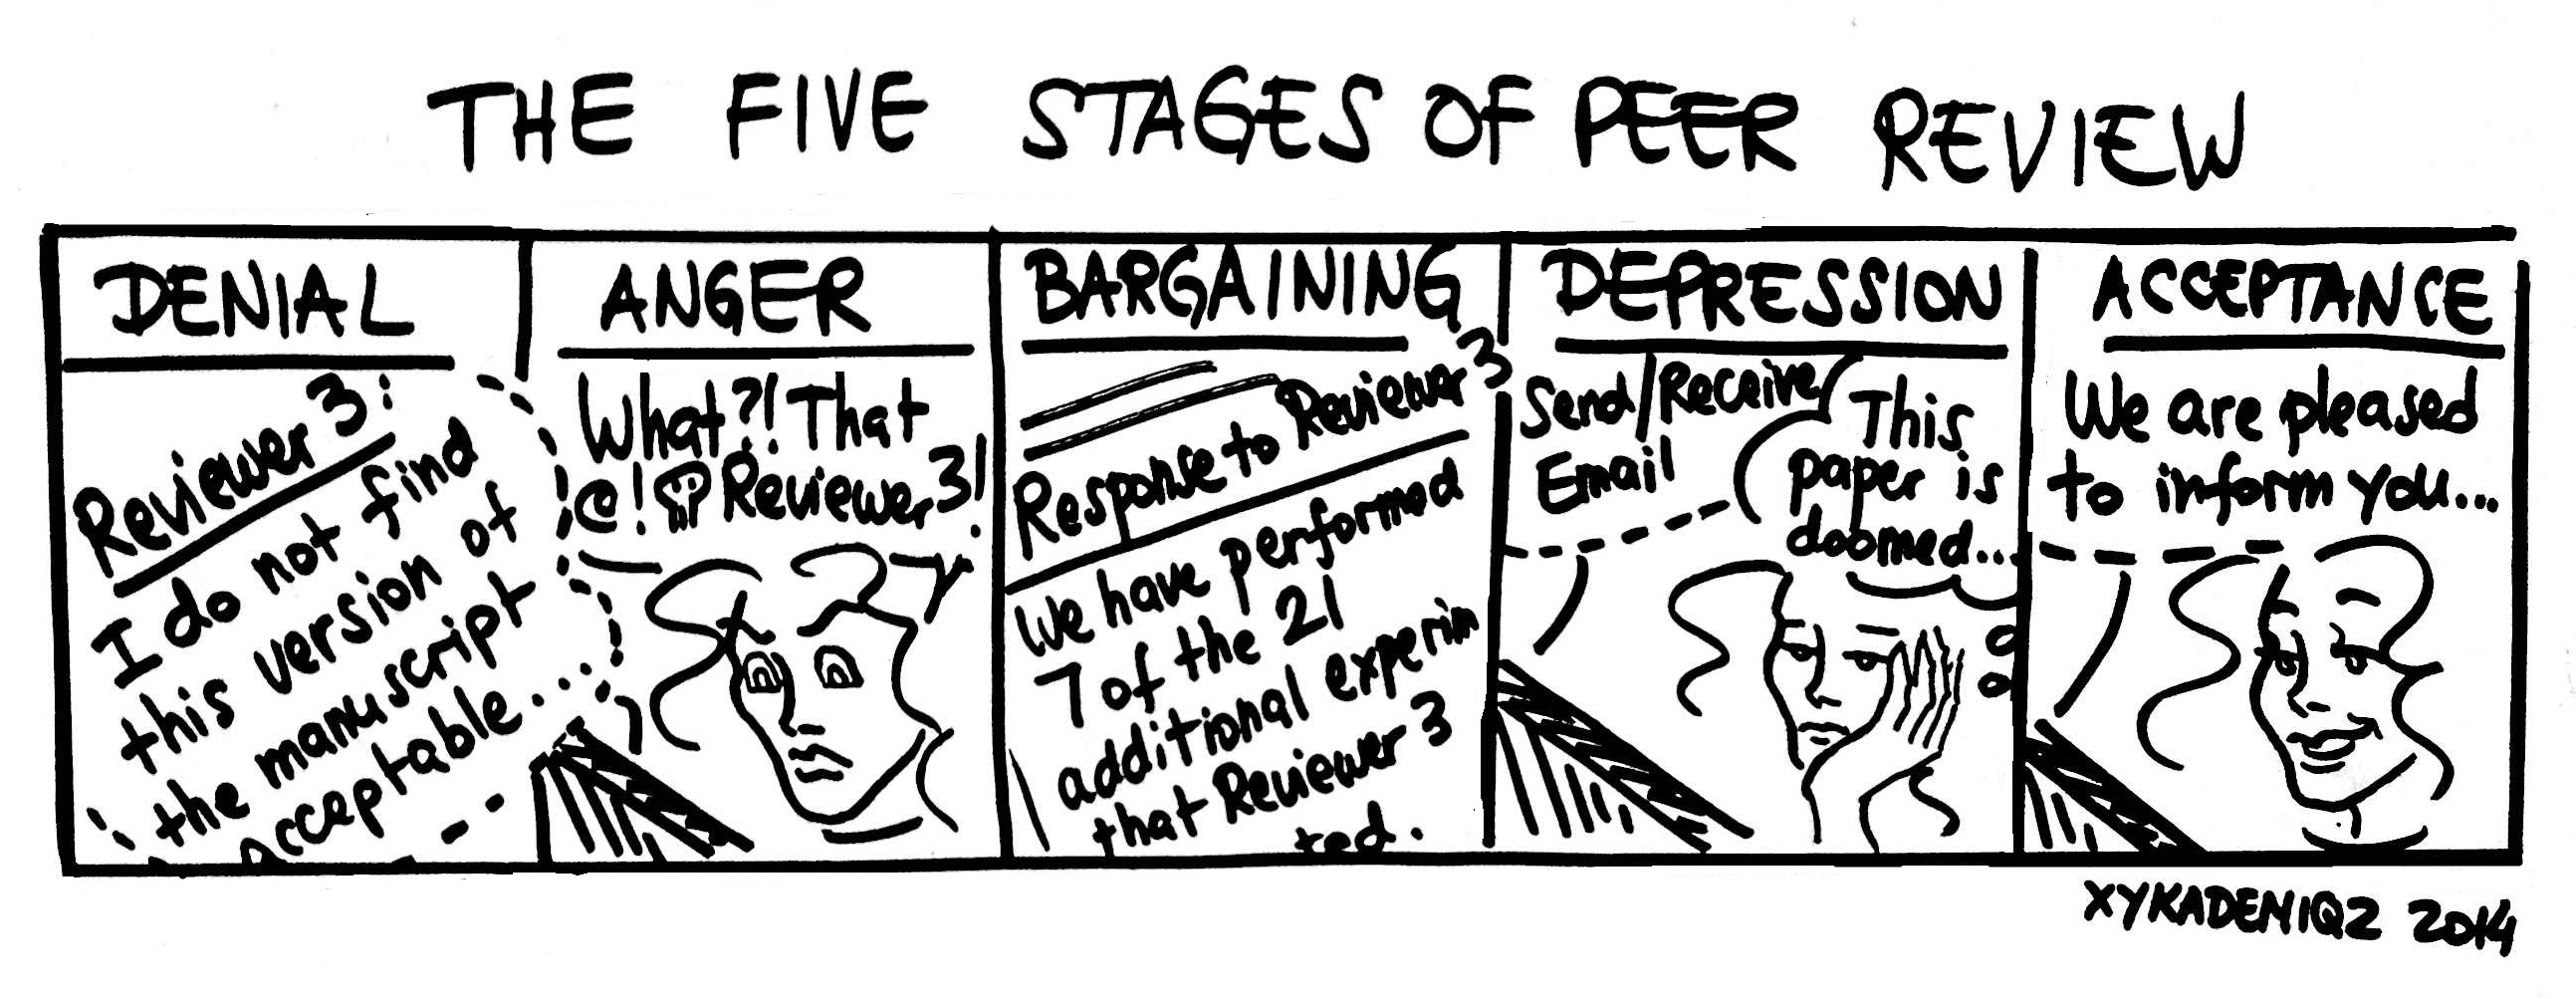 peer review writing process Referred to as peer conferencing, peer review, peer response groups, or writing  groups, the process of having students read and respond to the writing of their.